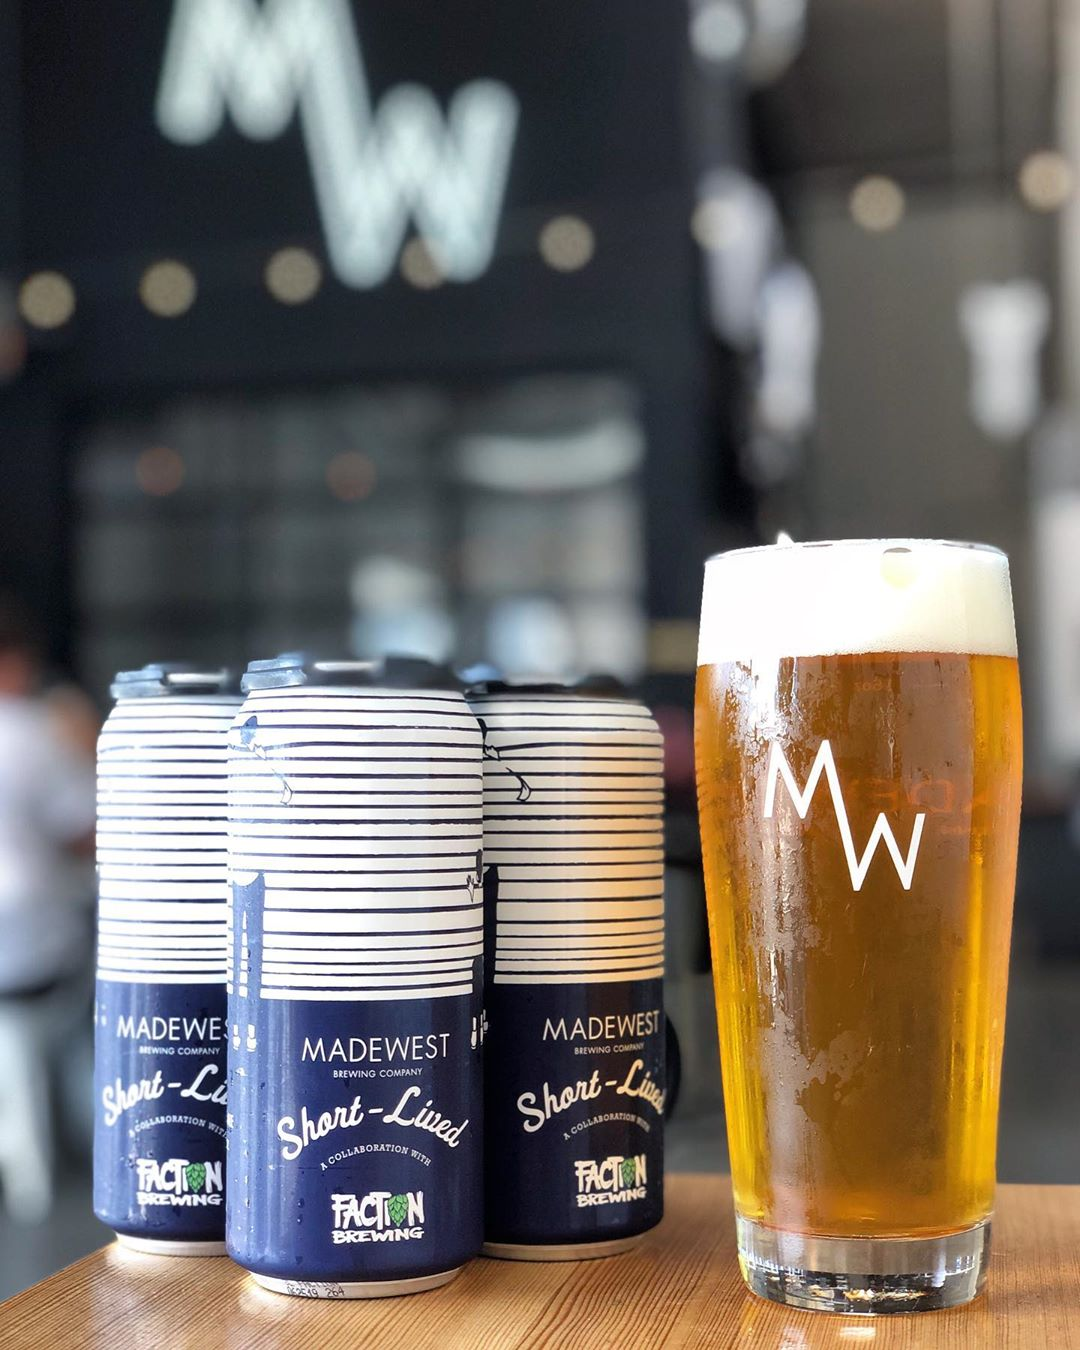 Faction Brewing and MadeWest